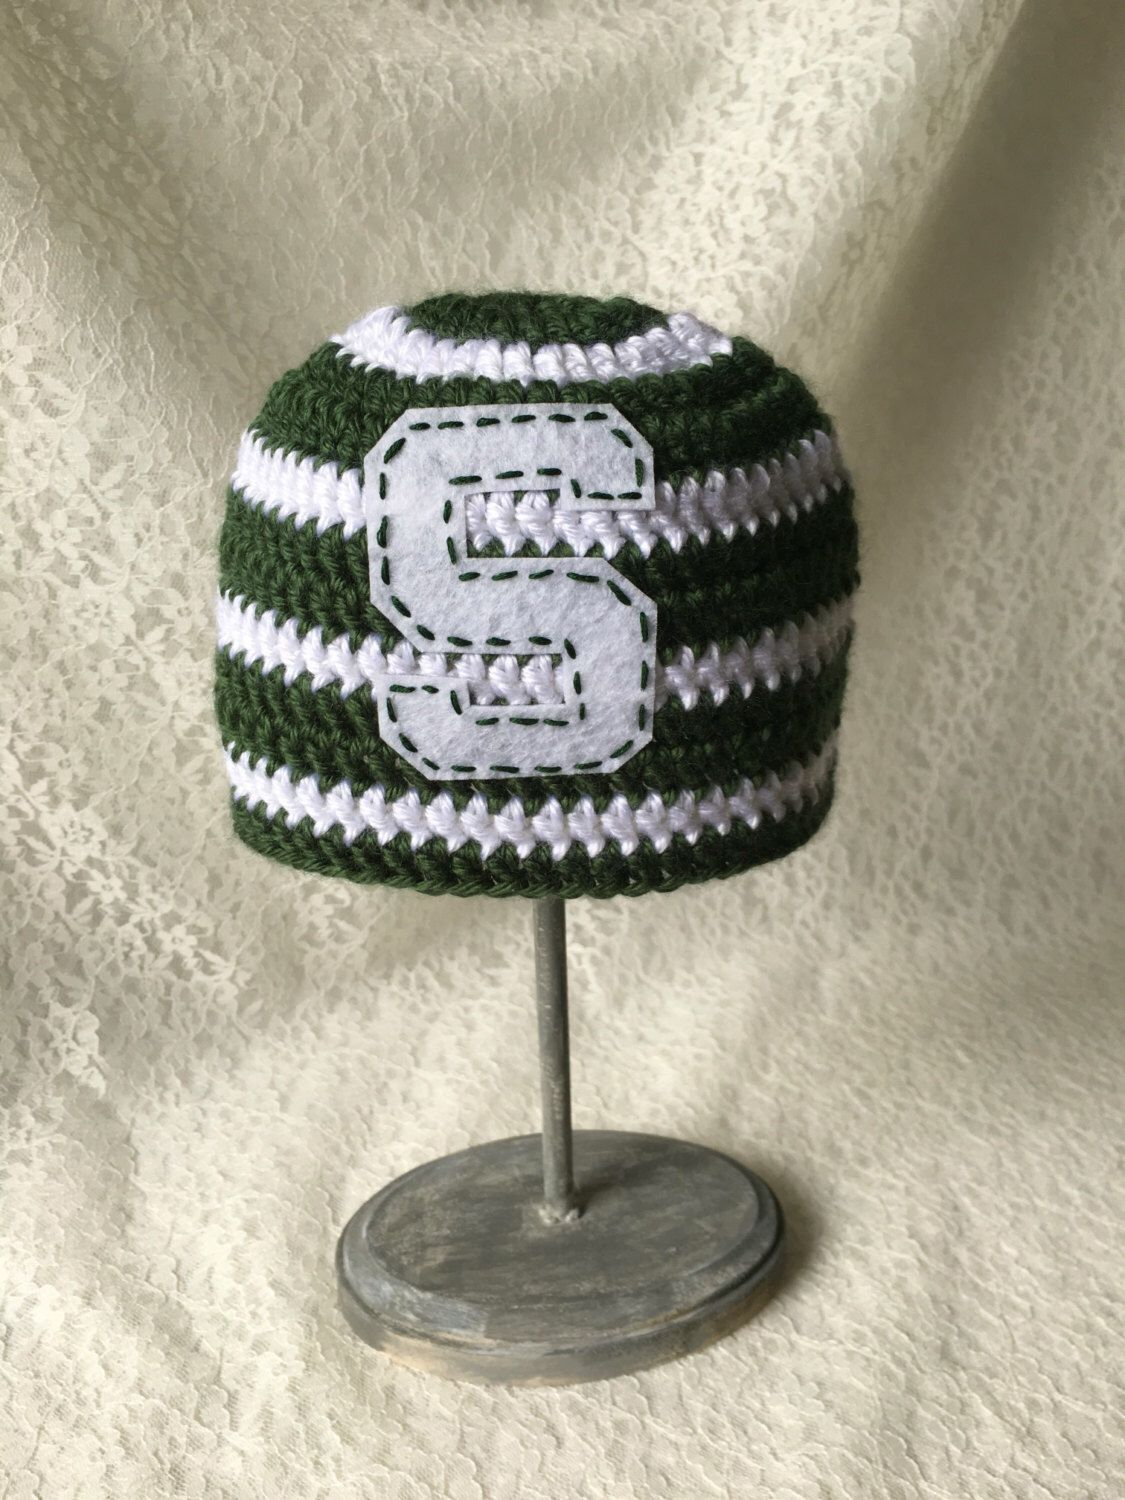 c883cff88d5 ... coupon code for items similar to michigan state university hat newborn  sized beanie msu crochet hat